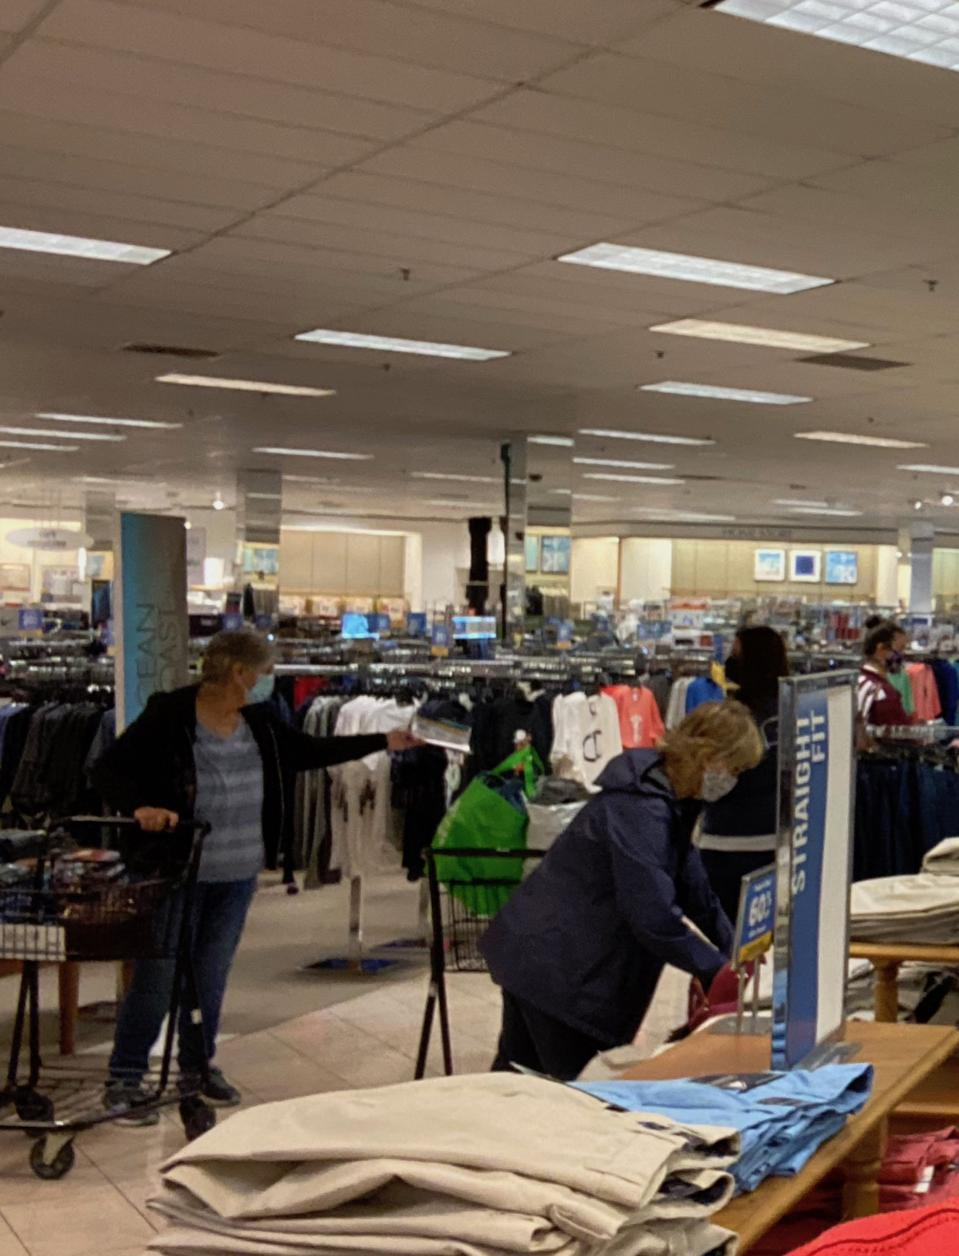 Shoppers at the Belk in Westminster, Maryland.